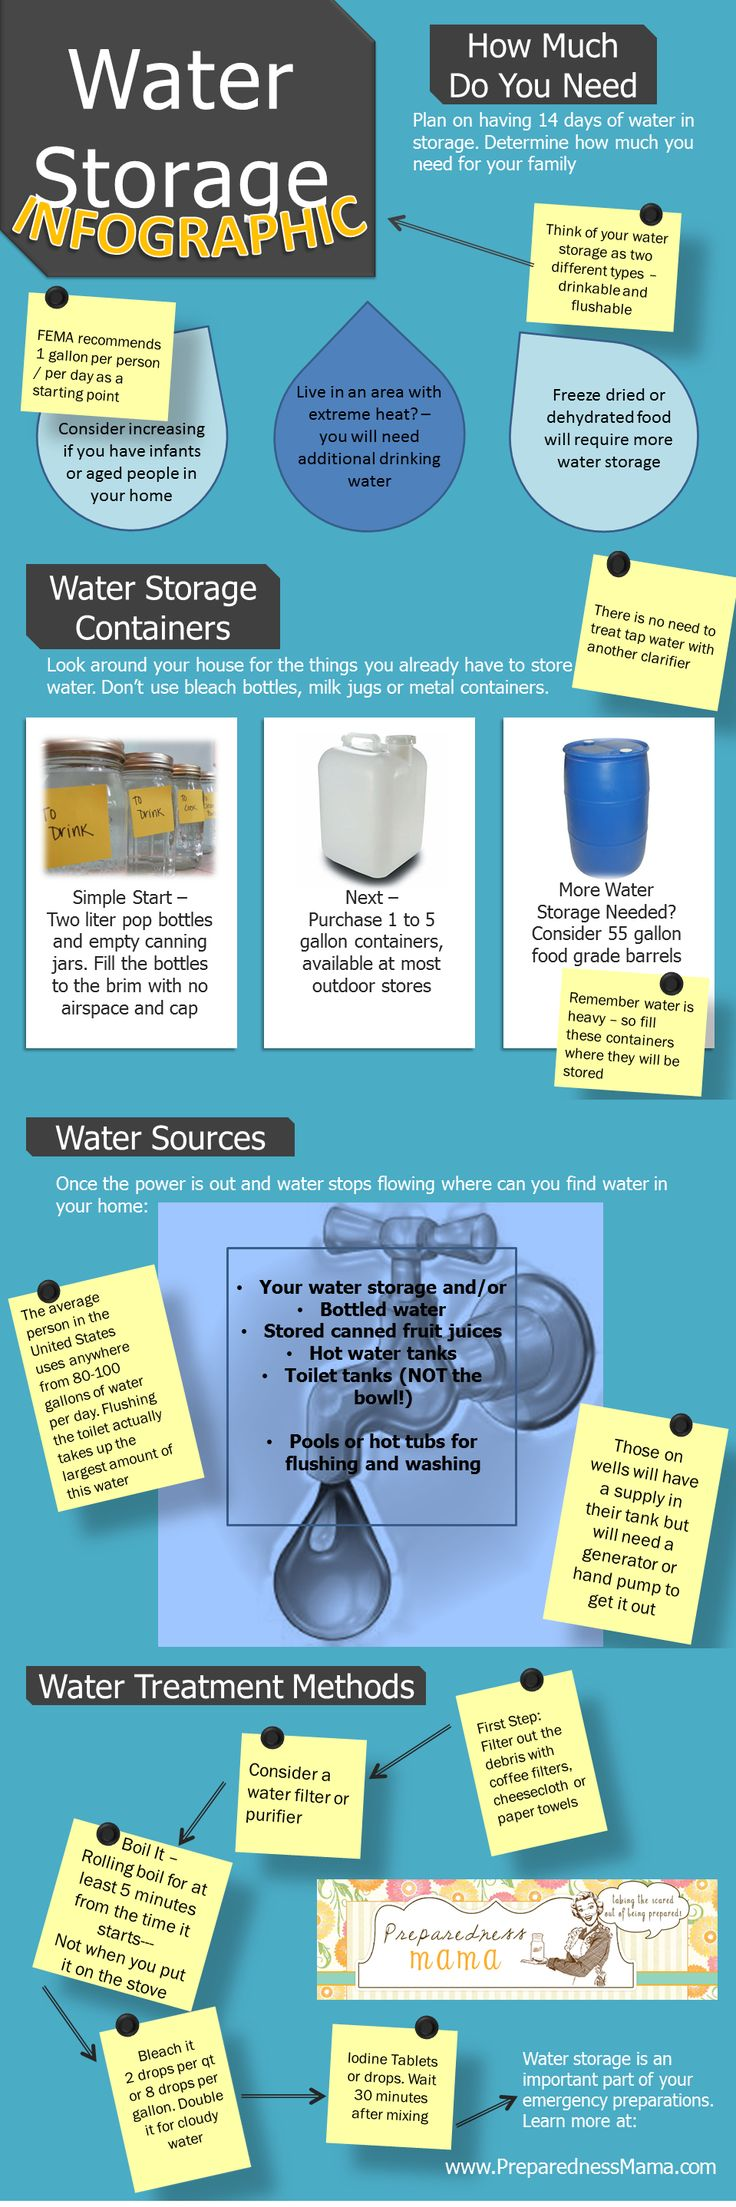 Water Storage Infographic - 72 Hour Kits -Emergency Preparedness - Preparedness Mama Need to PRINT this out & hang it in my storage room.